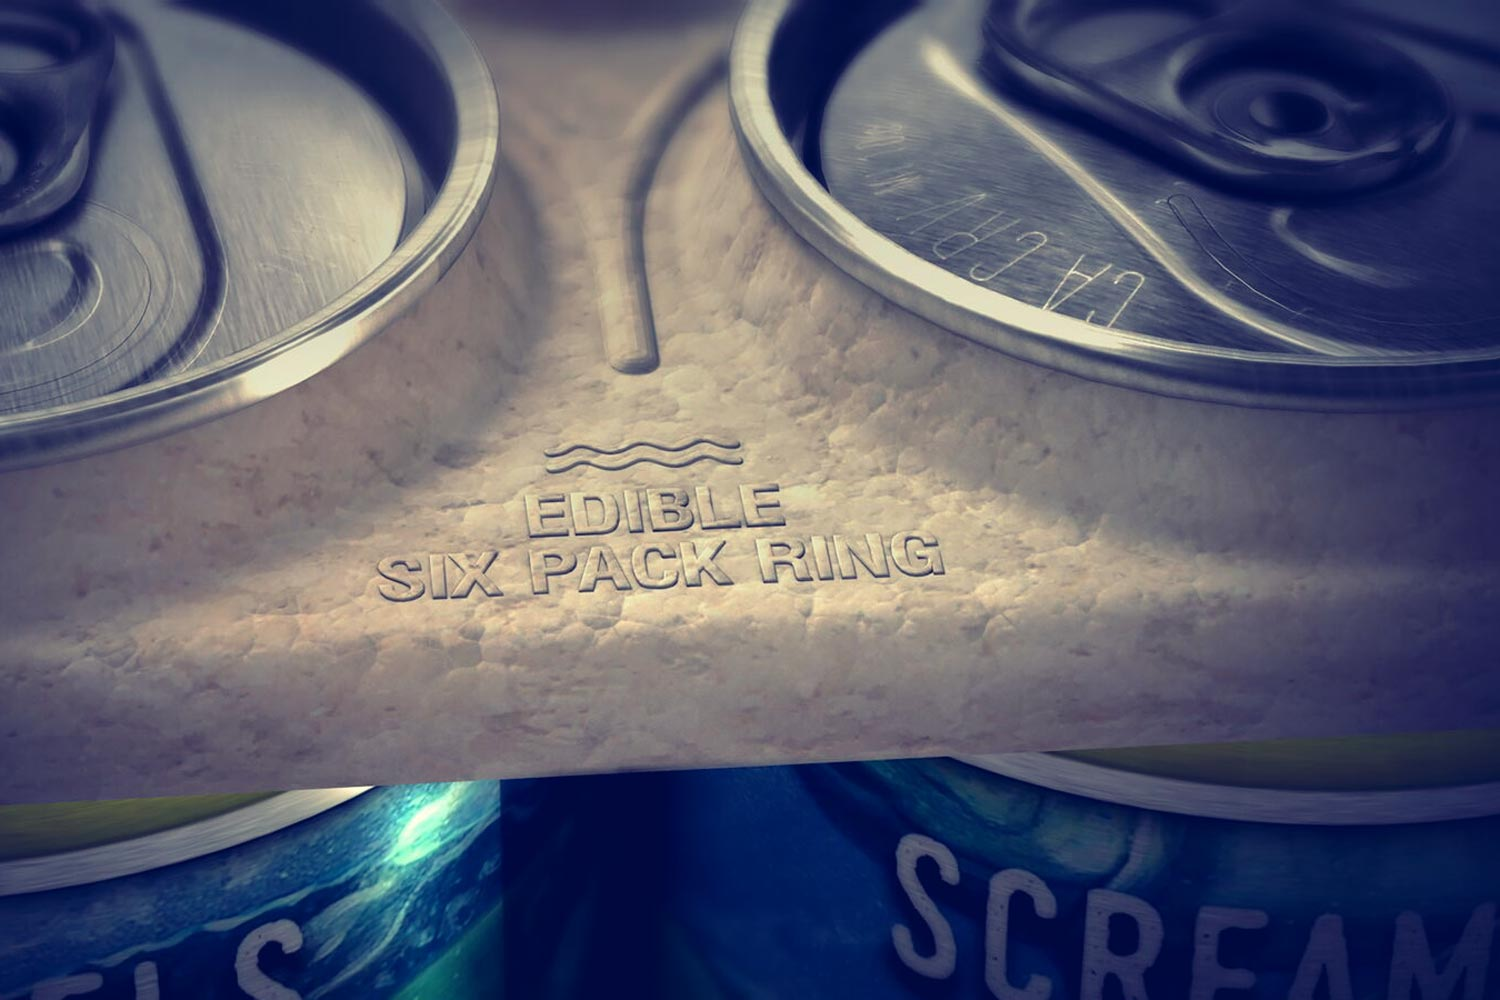 Darden alumnus Marco Vega's company, We Believers, has partnered with Saltwater Brewery in Delray Beach, Florida to test its edible six-pack rings. (Photo courtesy of We Believers)